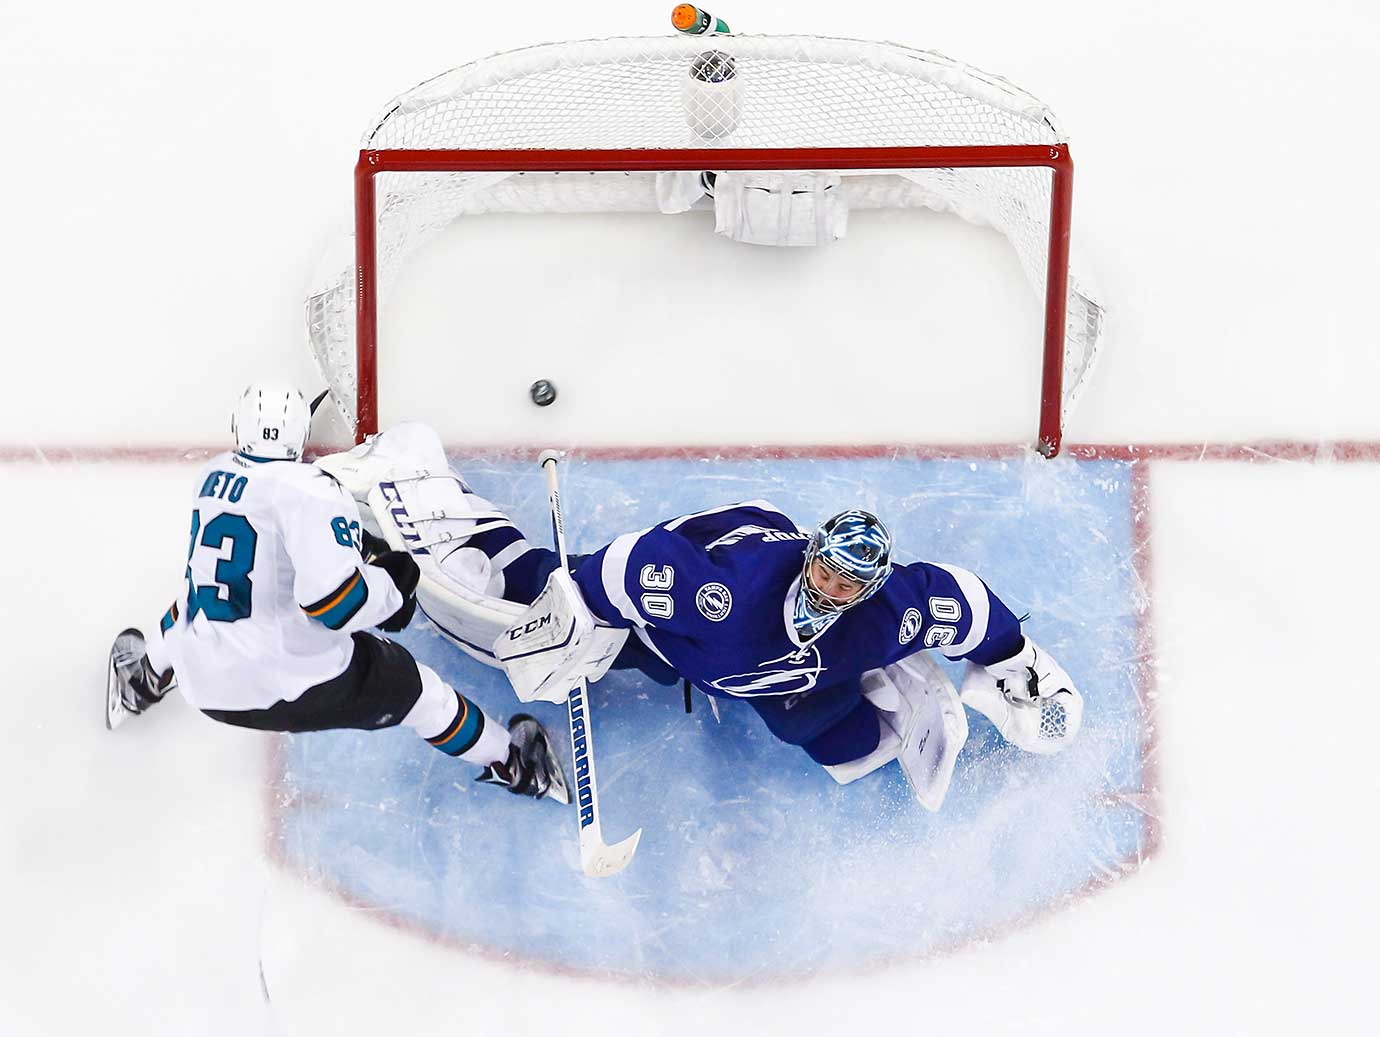 Matt Nieto of San Jose Sharks shoots the puck into the net against an outstretched goalie Ben Bishop of Tampa Bay.